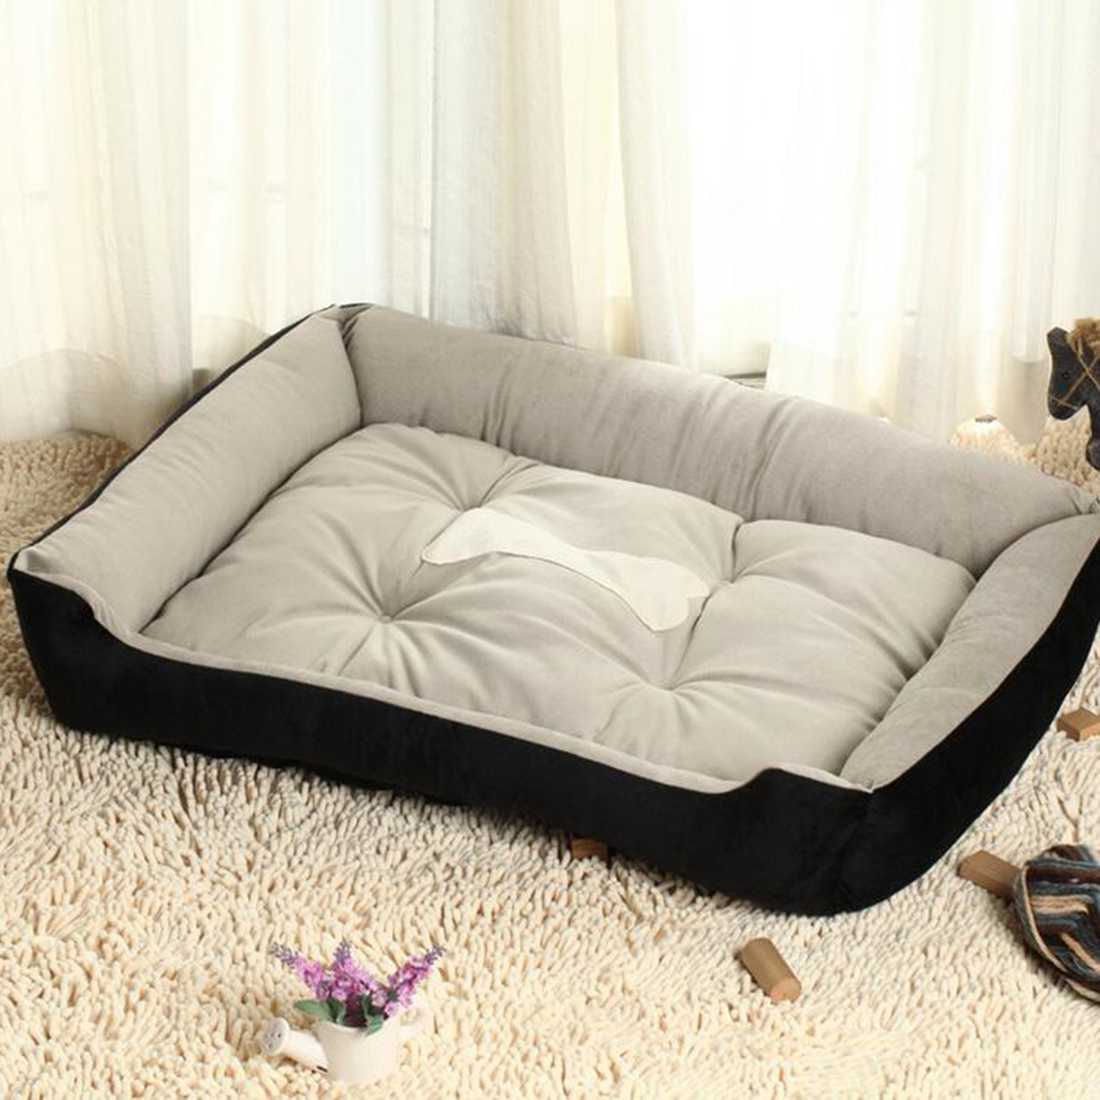 Soft Sofa Dog Bed Narrow Depth Small Beds Warm Lounger For Large Golden